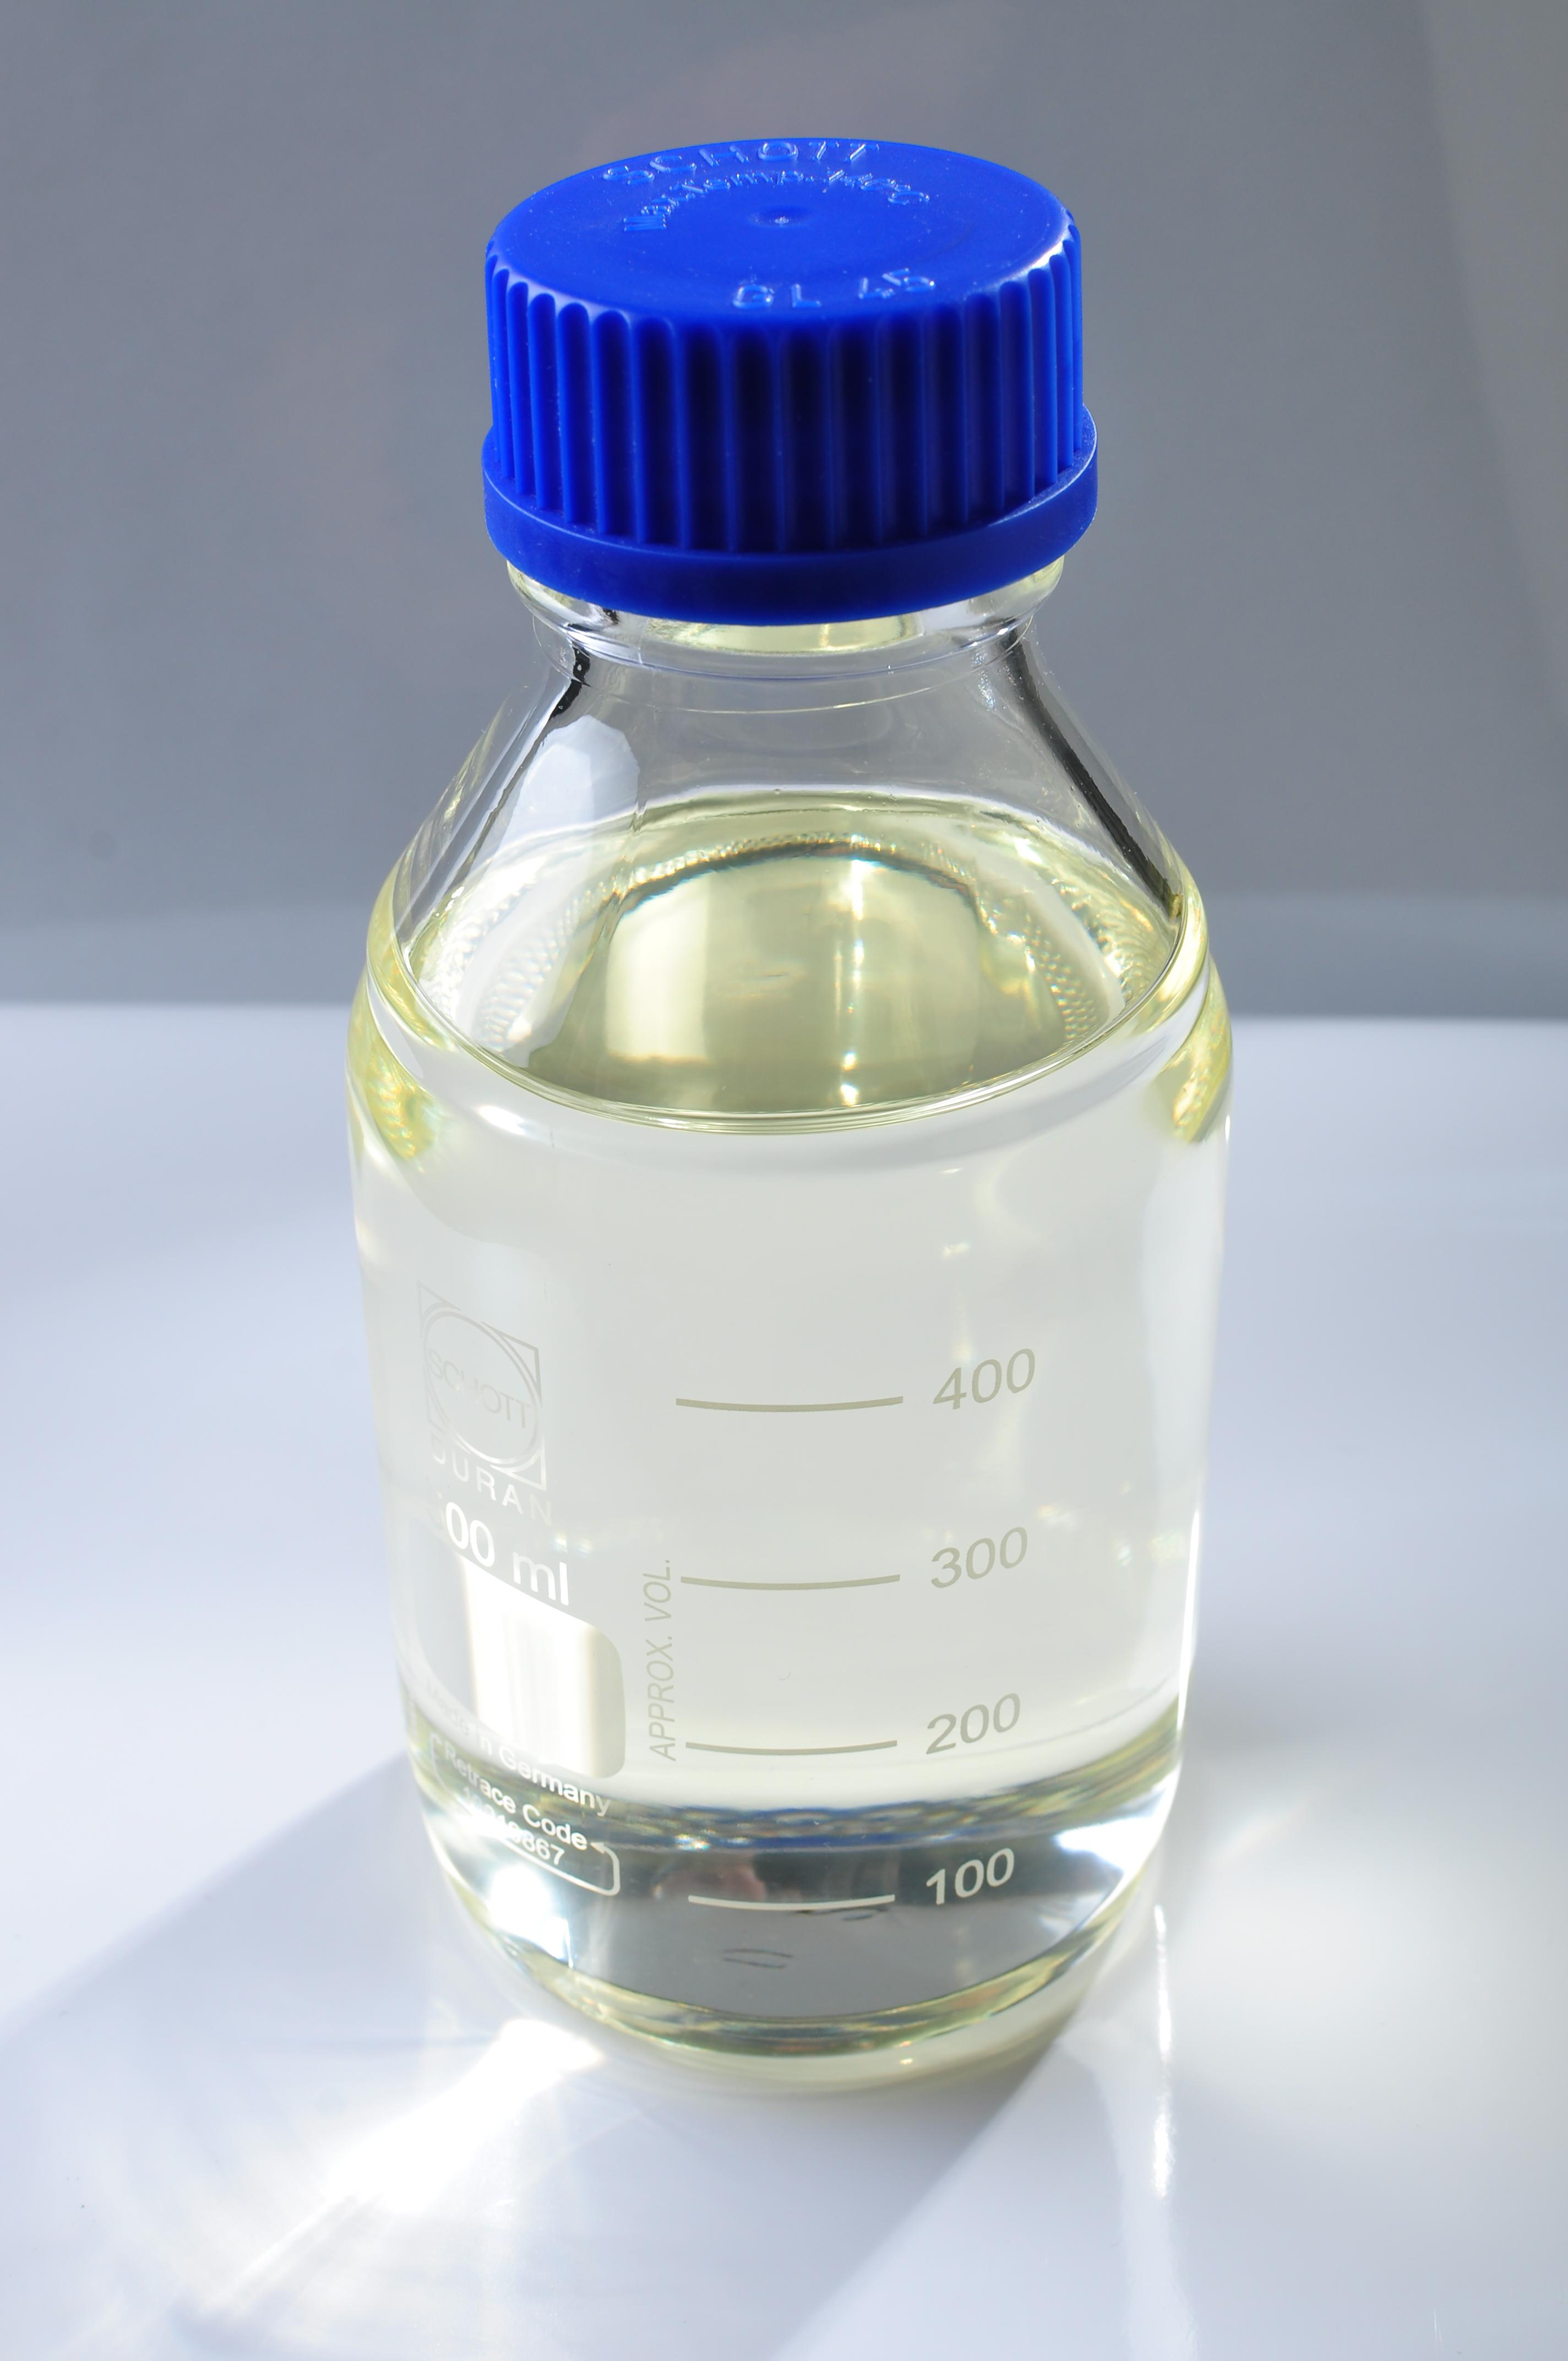 textile agent methyl oleate